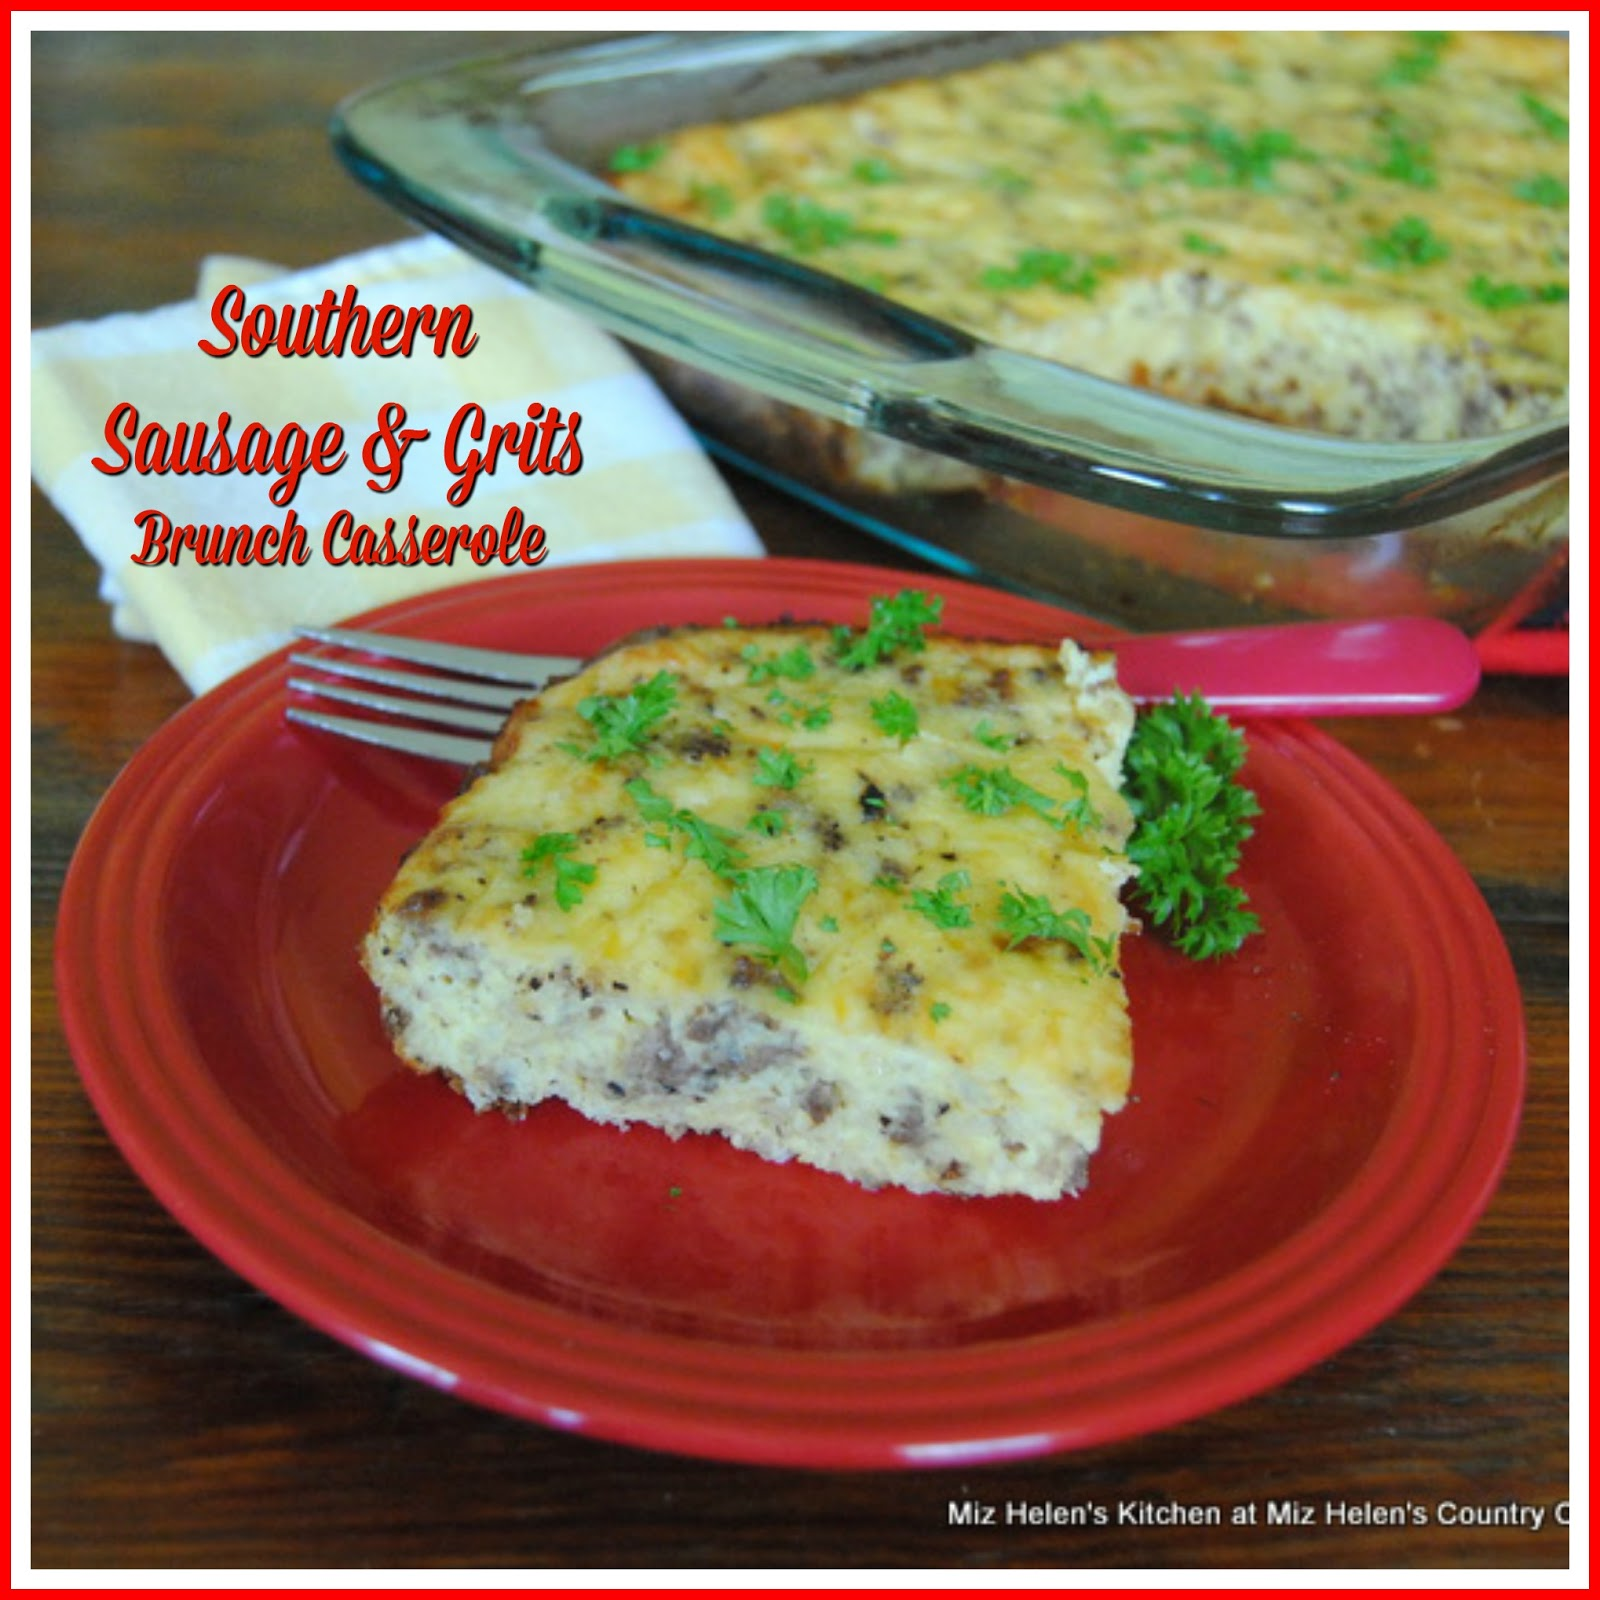 Southern Sausage and Grits Brunch Casserole at Miz Helen's Country Cottage